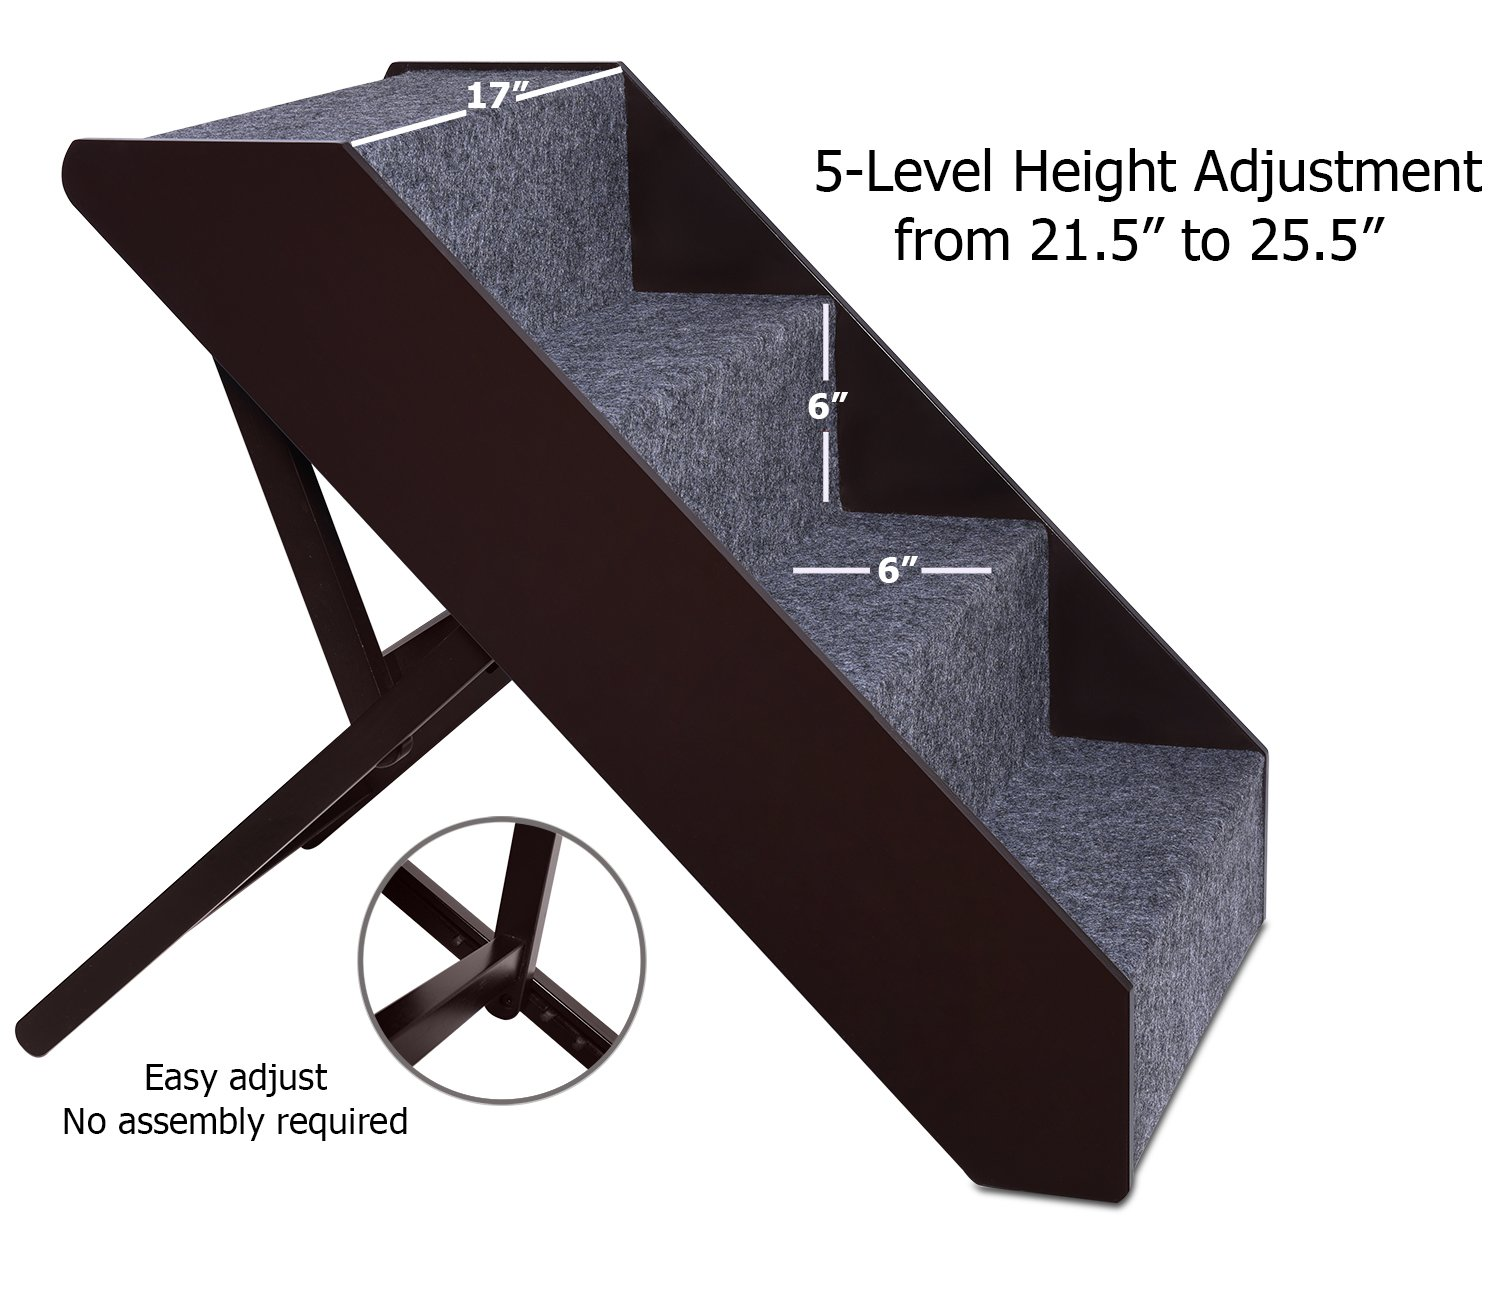 Arf Pets Wood Dog Stairs, 4 Levels Height Adjustment Wide Pet Steps, Foldable by Arf Pets (Image #1)